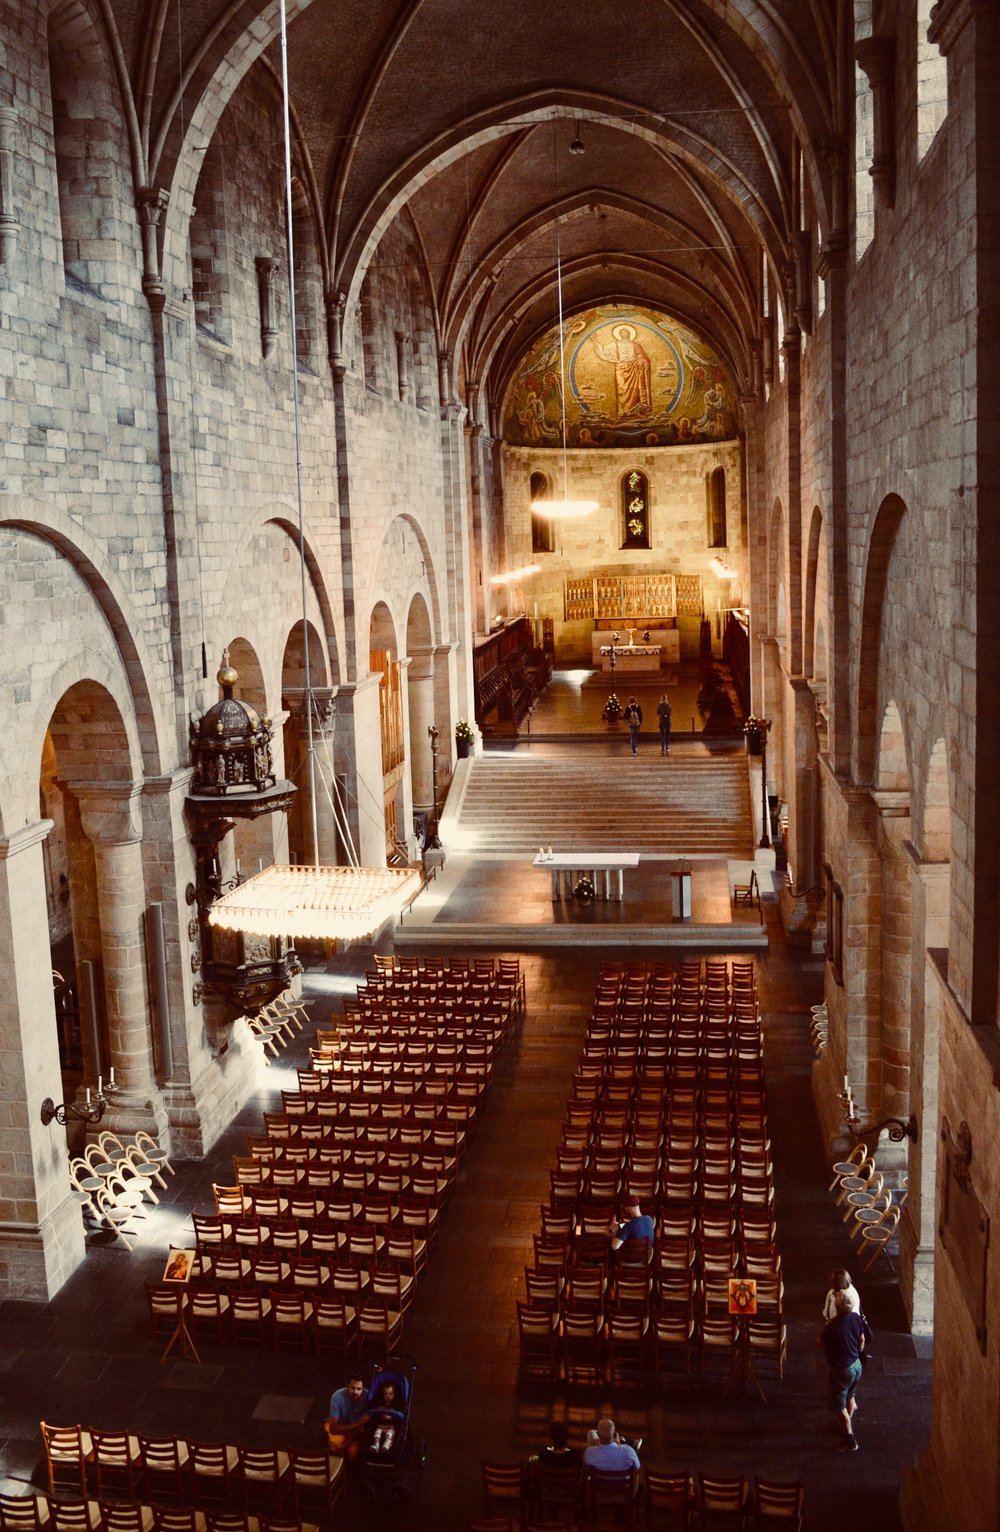 Lund Cathedral, as seen from the organ gallery.